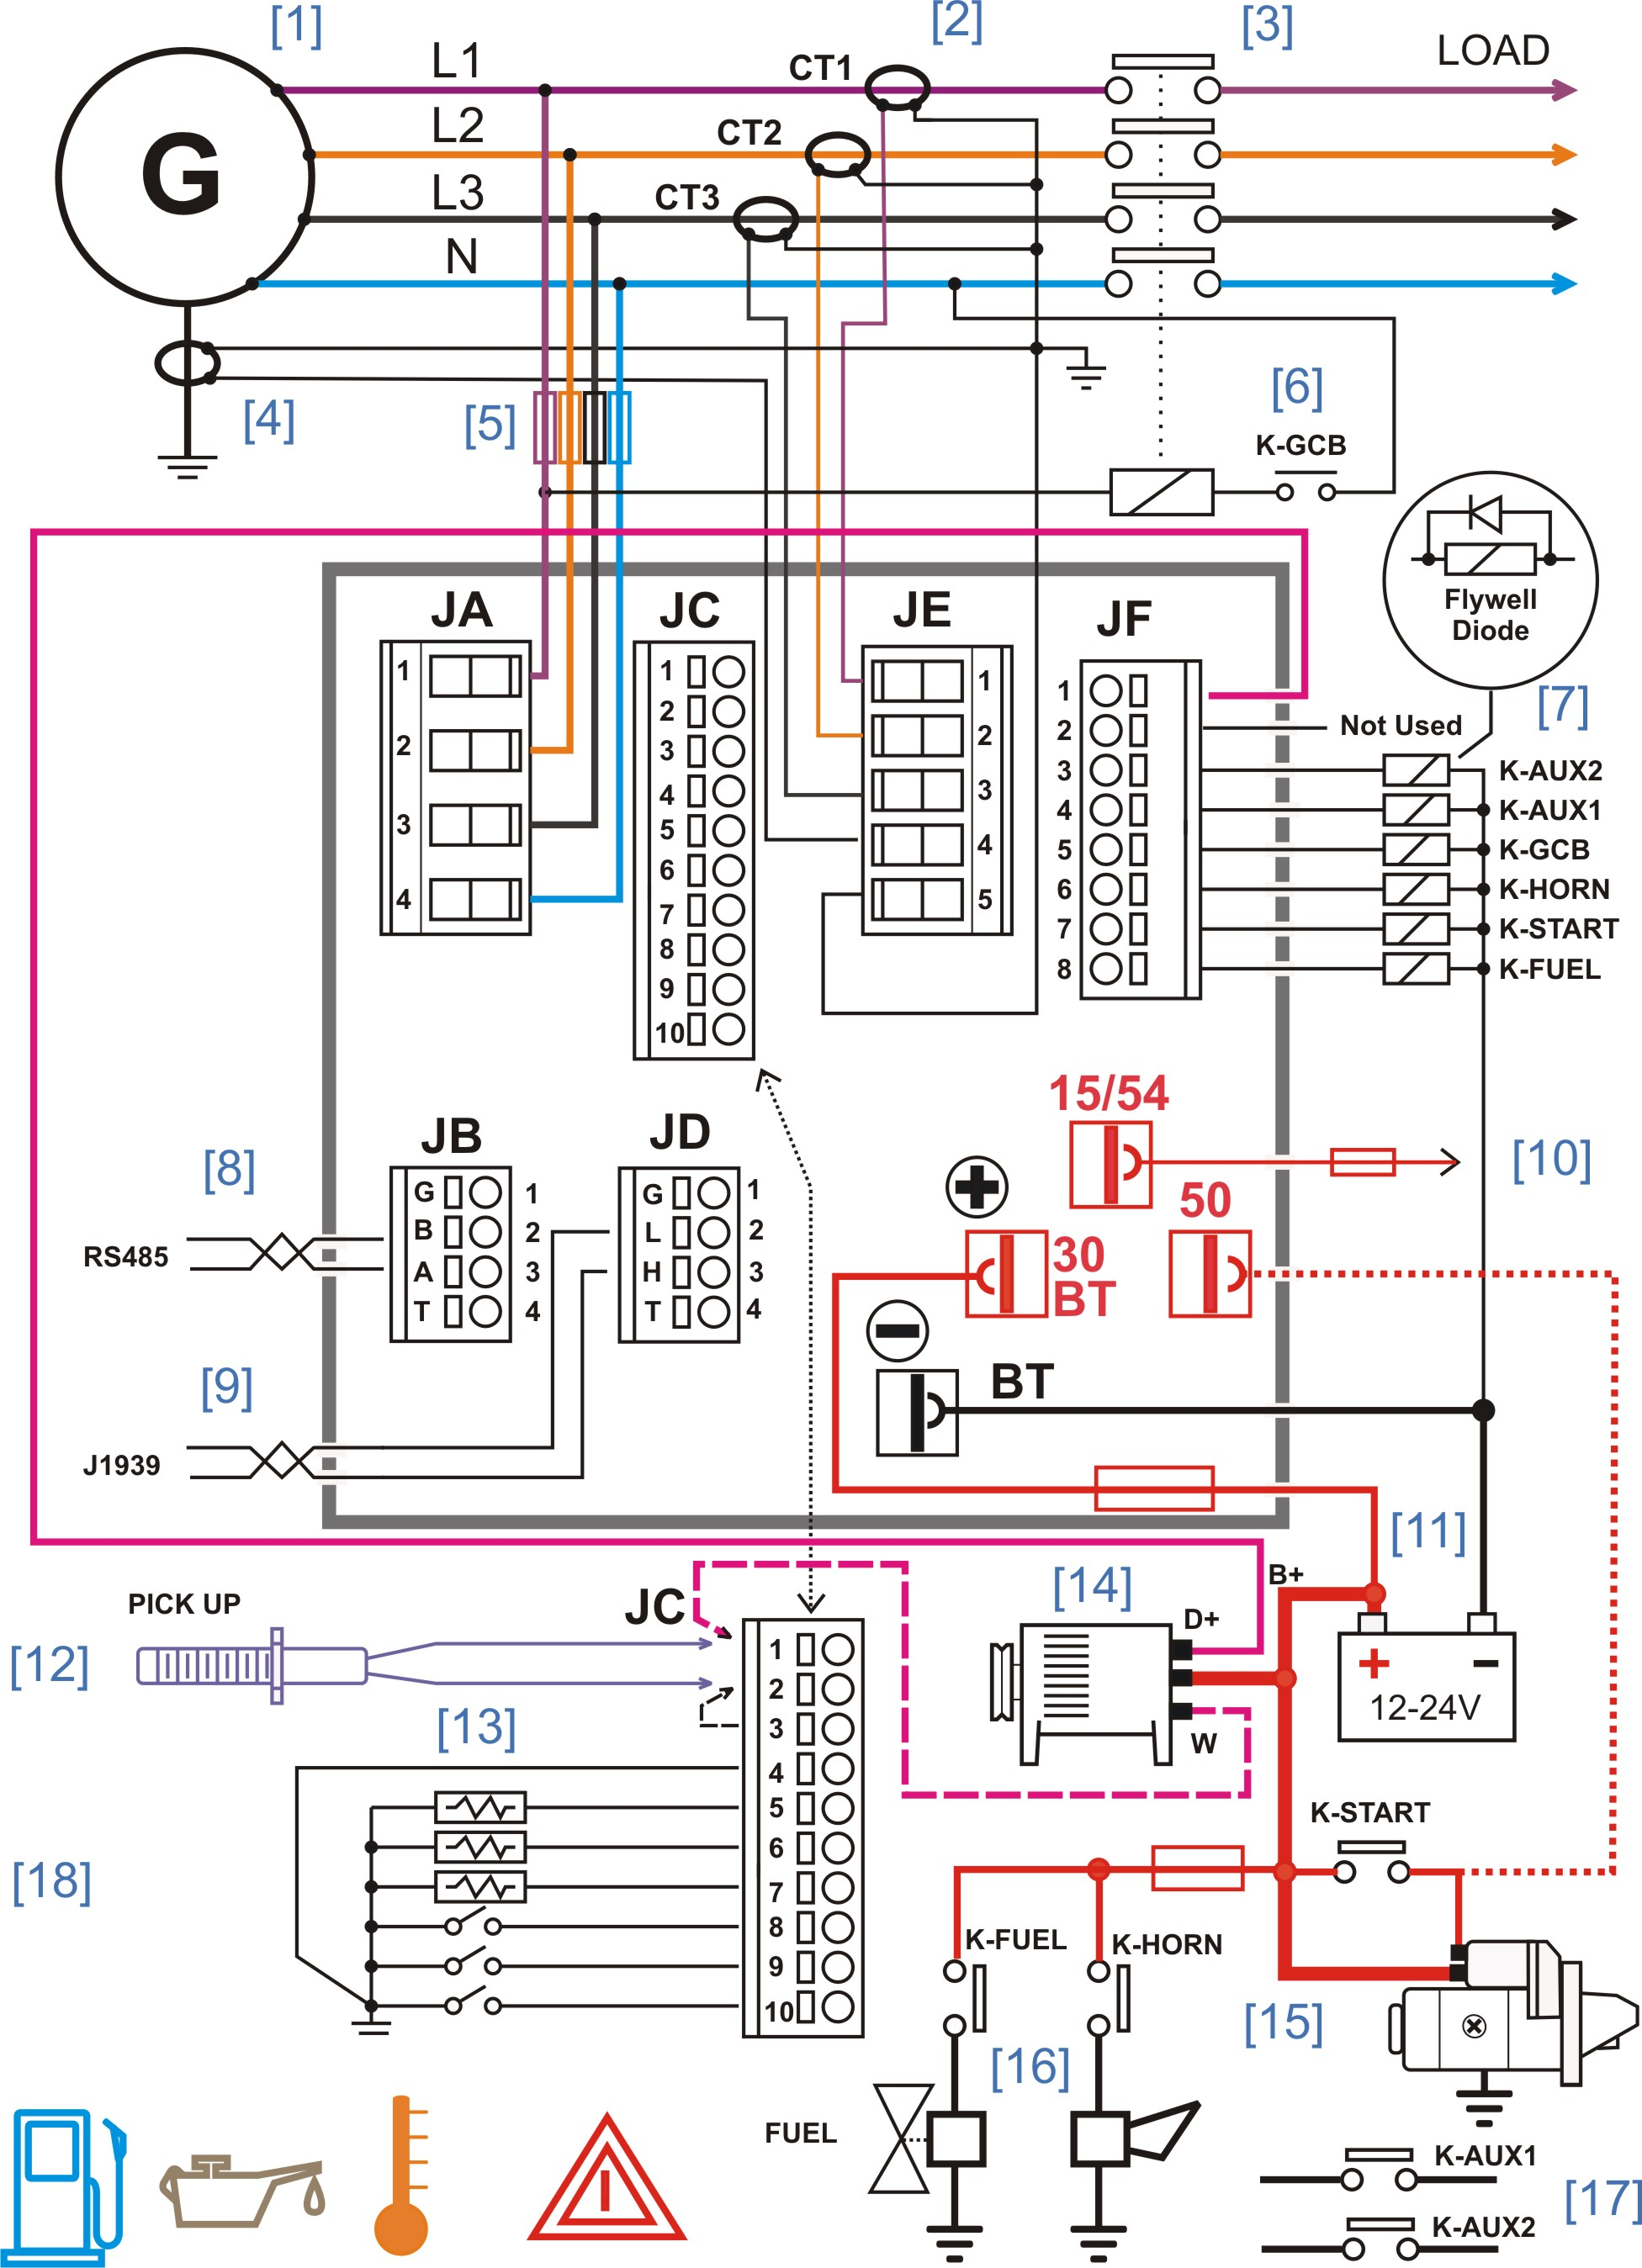 Generator Controller Wiring Diagram generator wiring diagrams on generator download wirning diagrams access 4000 control panel wiring diagram at mifinder.co